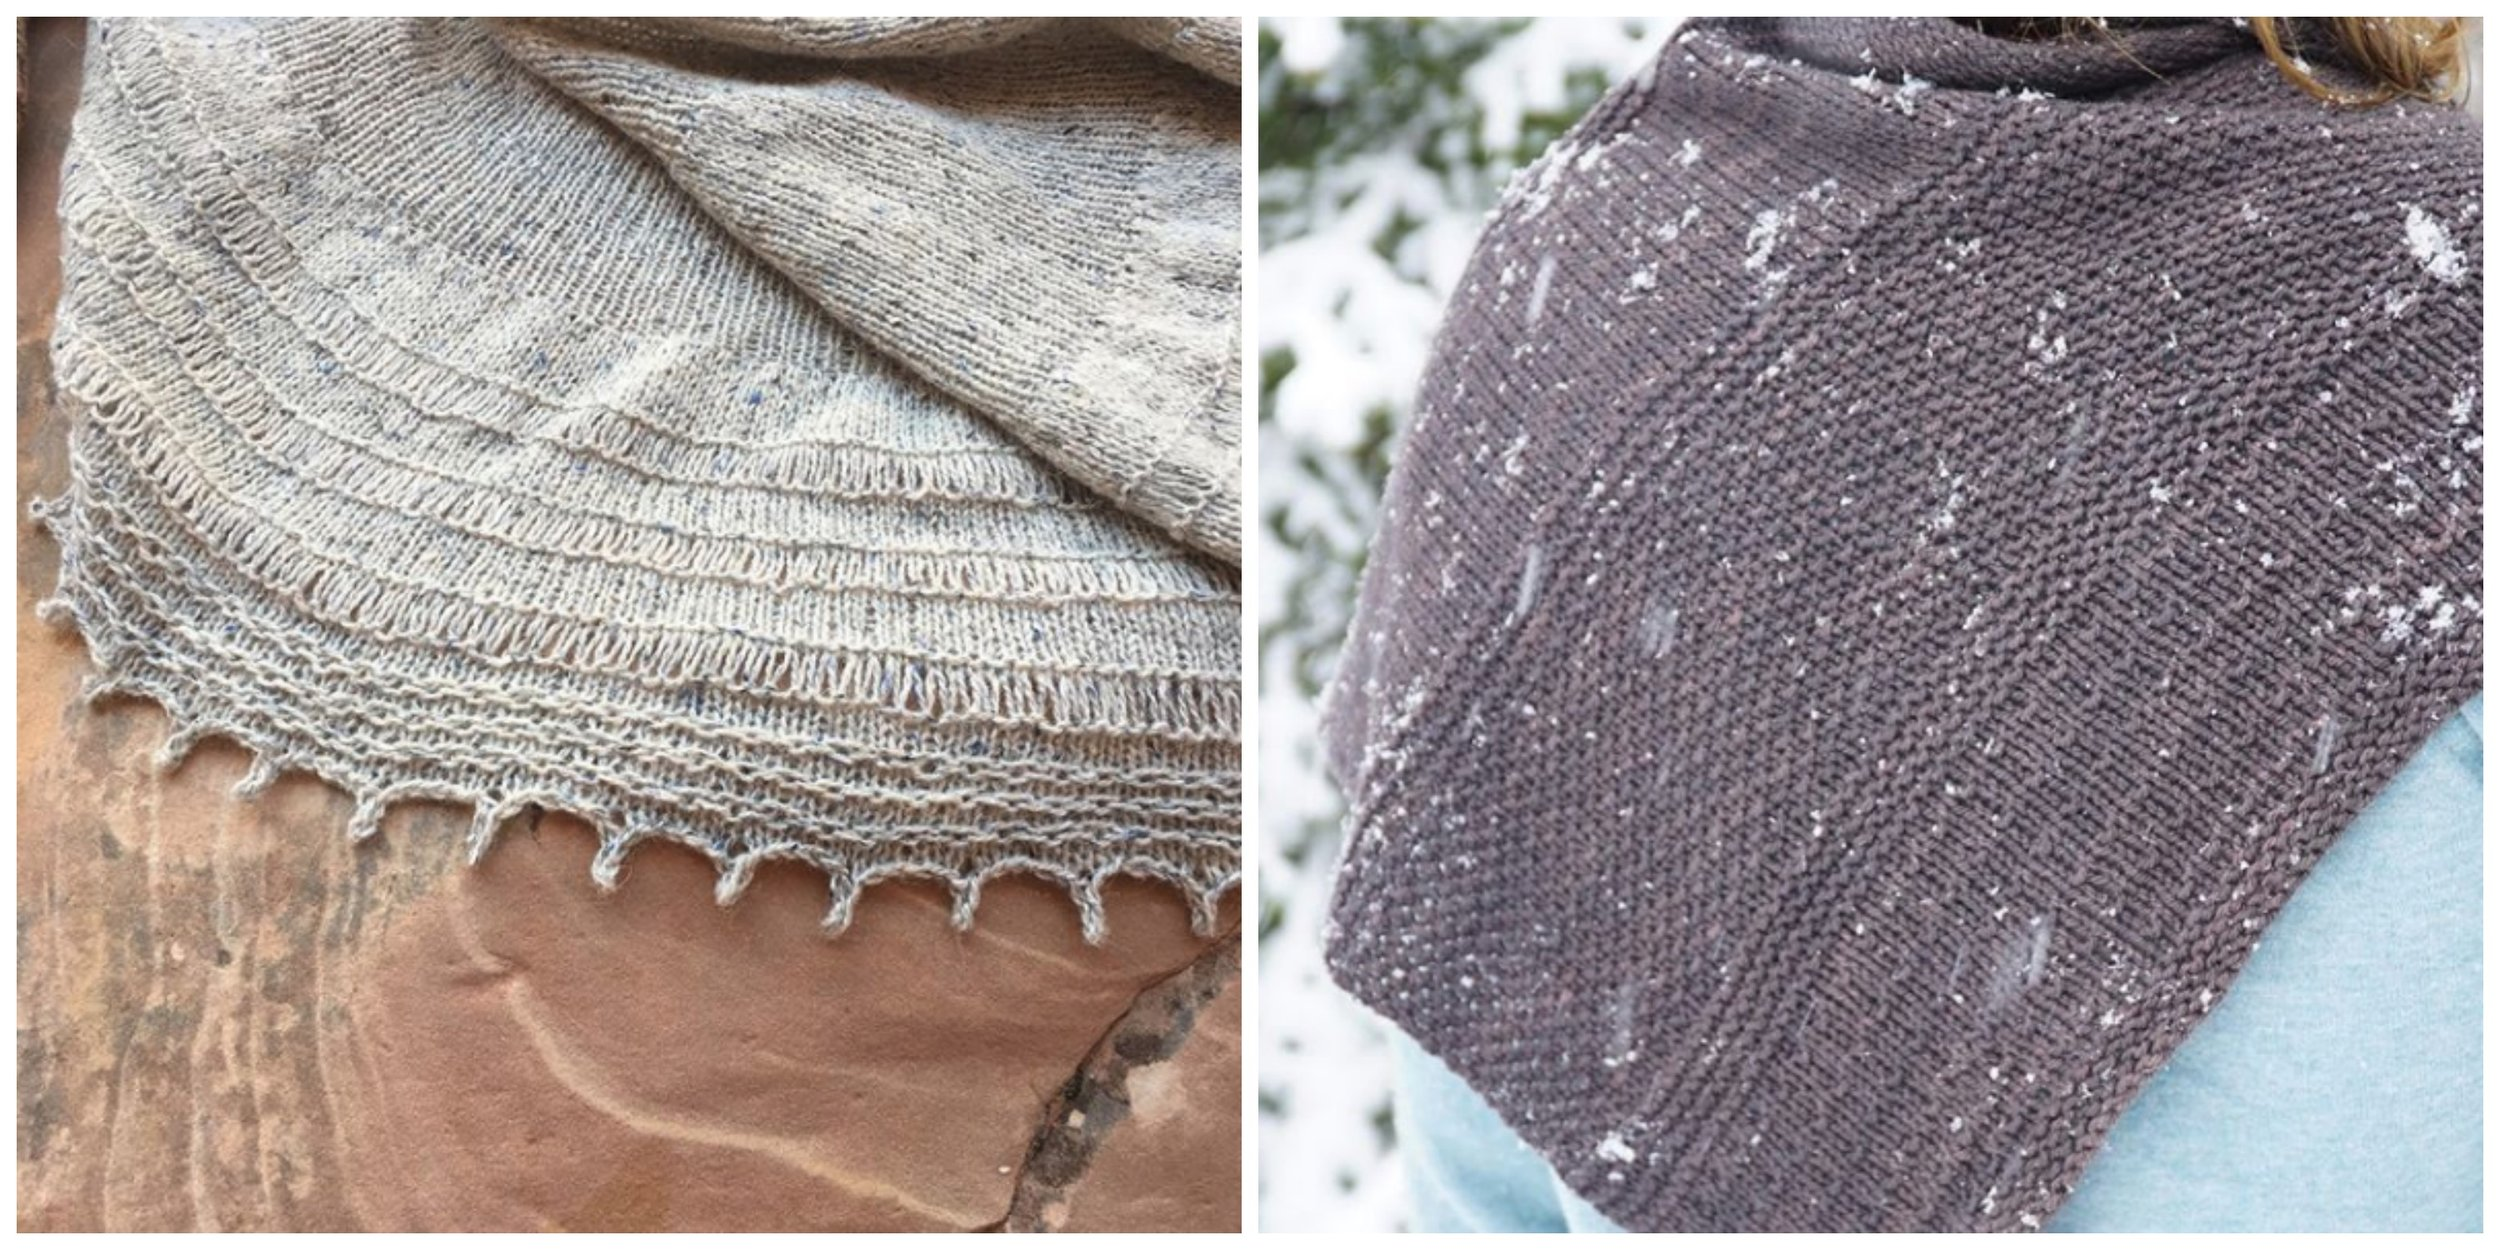 Rachel has been designing up a storm: new project in the works on the left, and newly published Snow Days shawl on the right